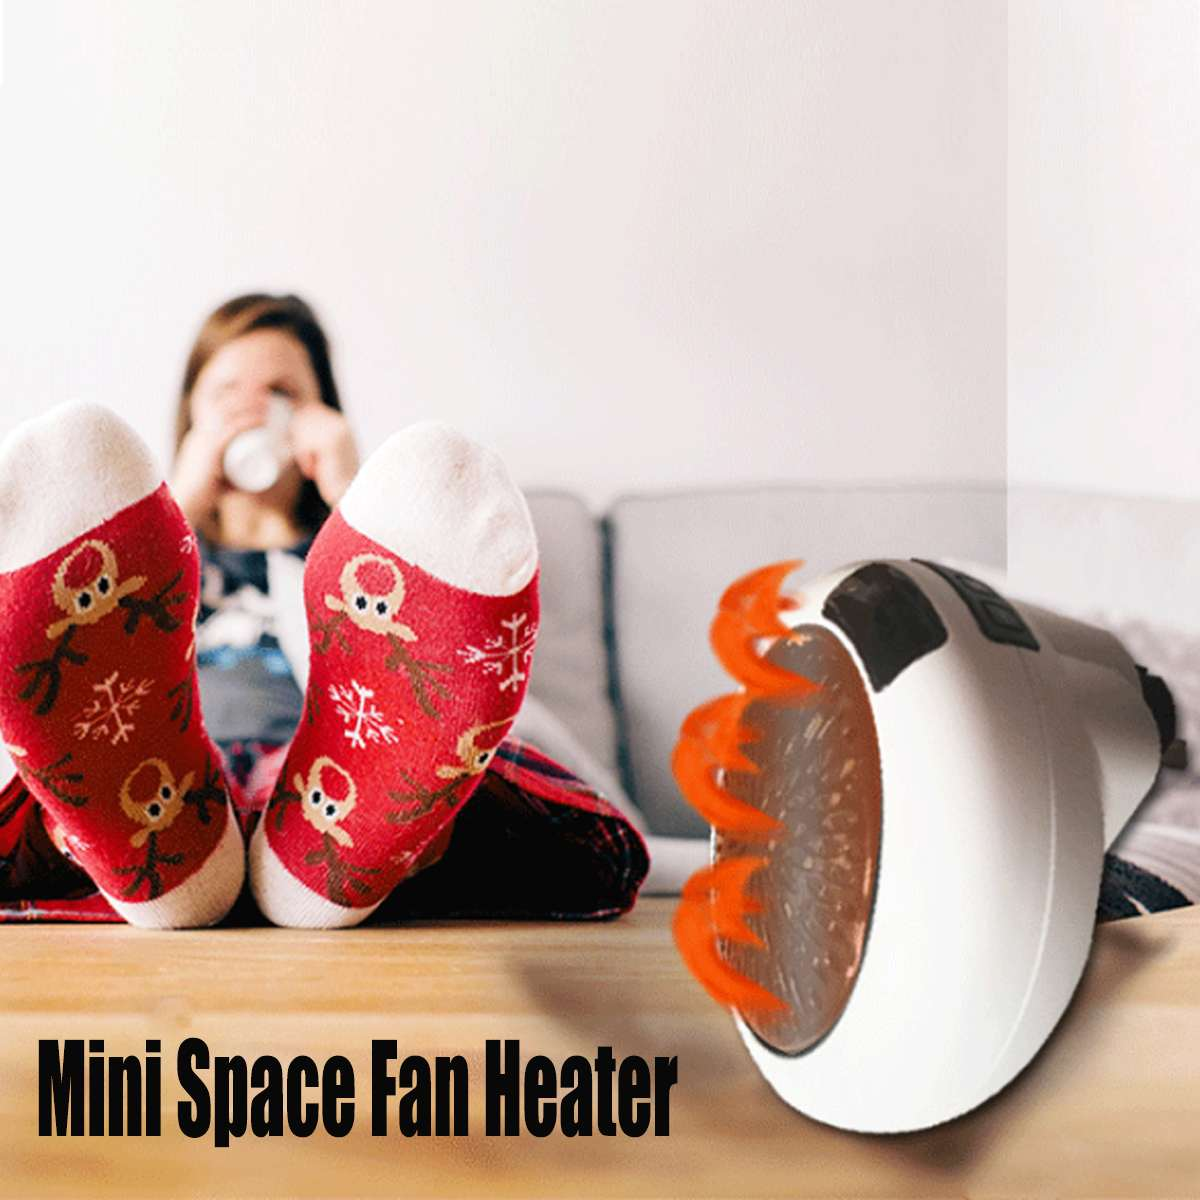 900W Mini Electric Air Heater EU Plug Wall-Outlet Powerful Warm Blower Fast Heater Fan Stove Radiator Room Warmer For Home Offic